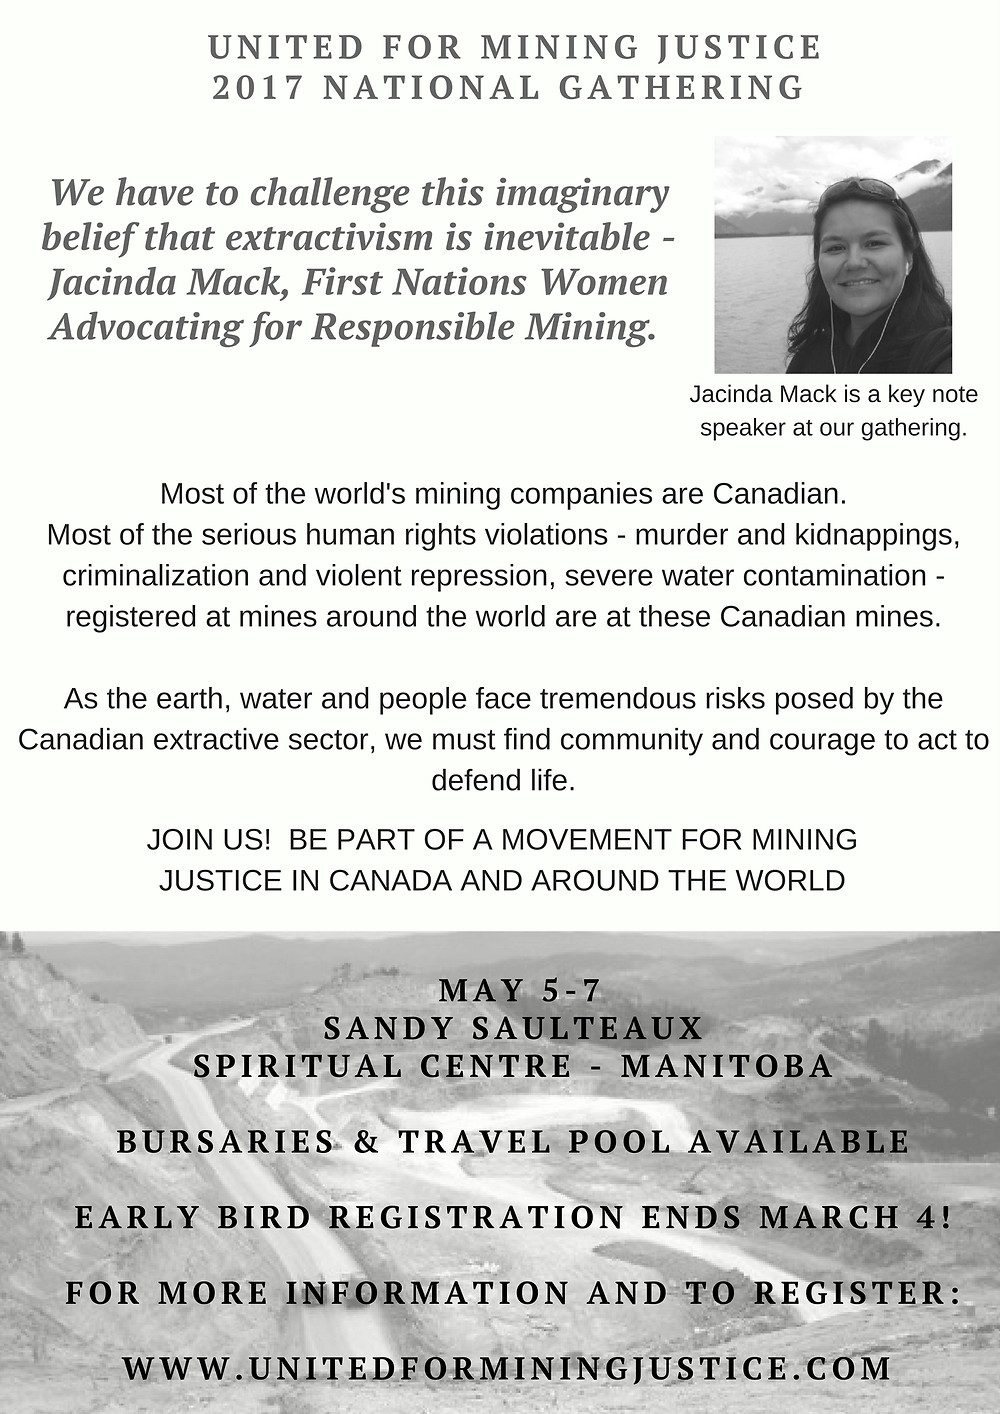 Early Bird Registration for United for Mining Justice Gathering Closes Soon!